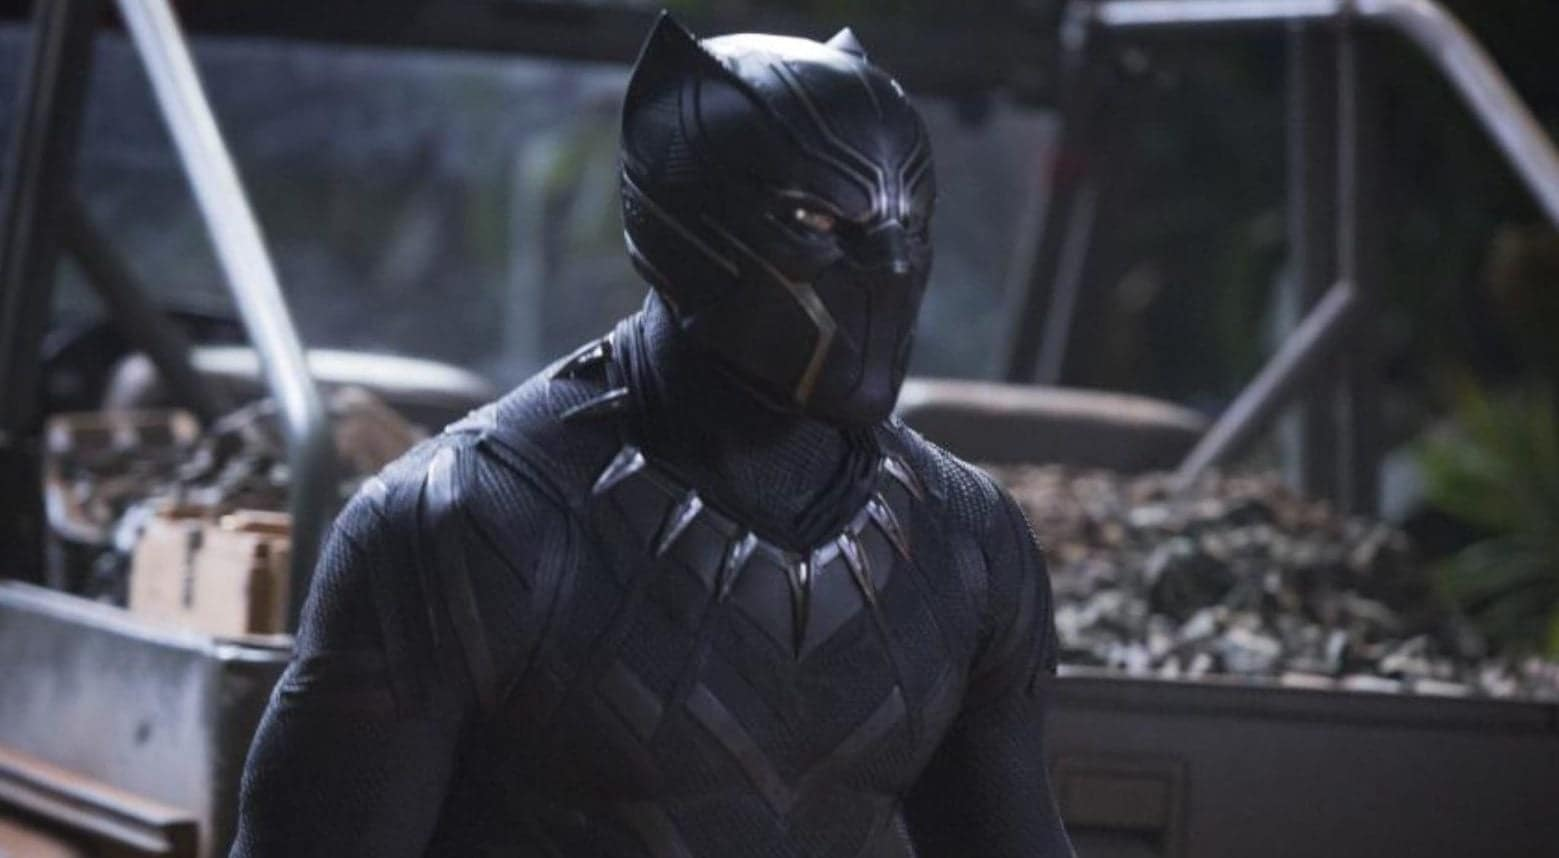 Black Panther lives up to the hype